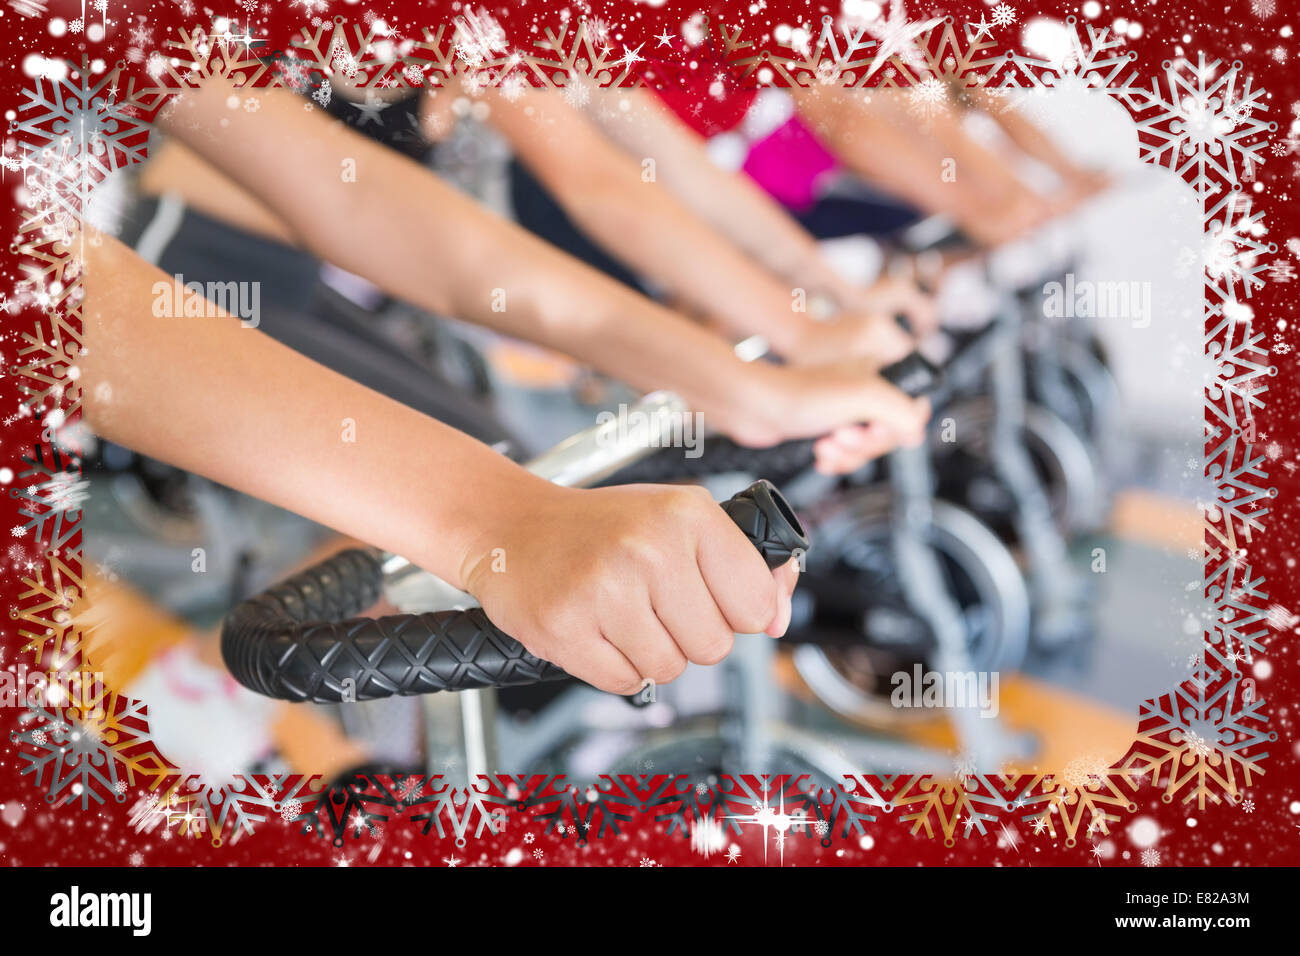 Spin class working out in a row - Stock Image